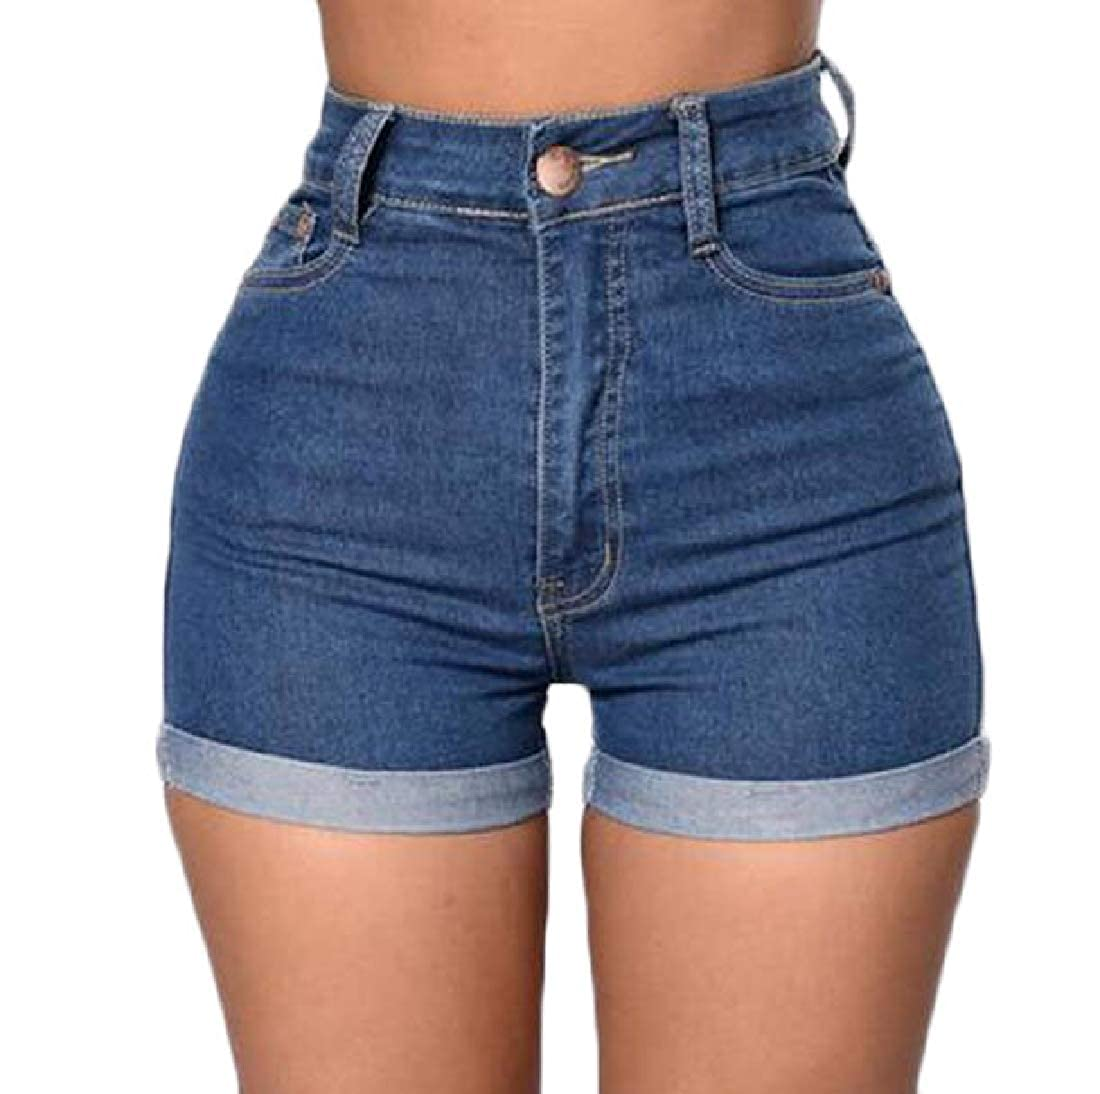 Lutratocro Womens High Waist Cuffed Jeans Washed Slim Fit Denim Shorts